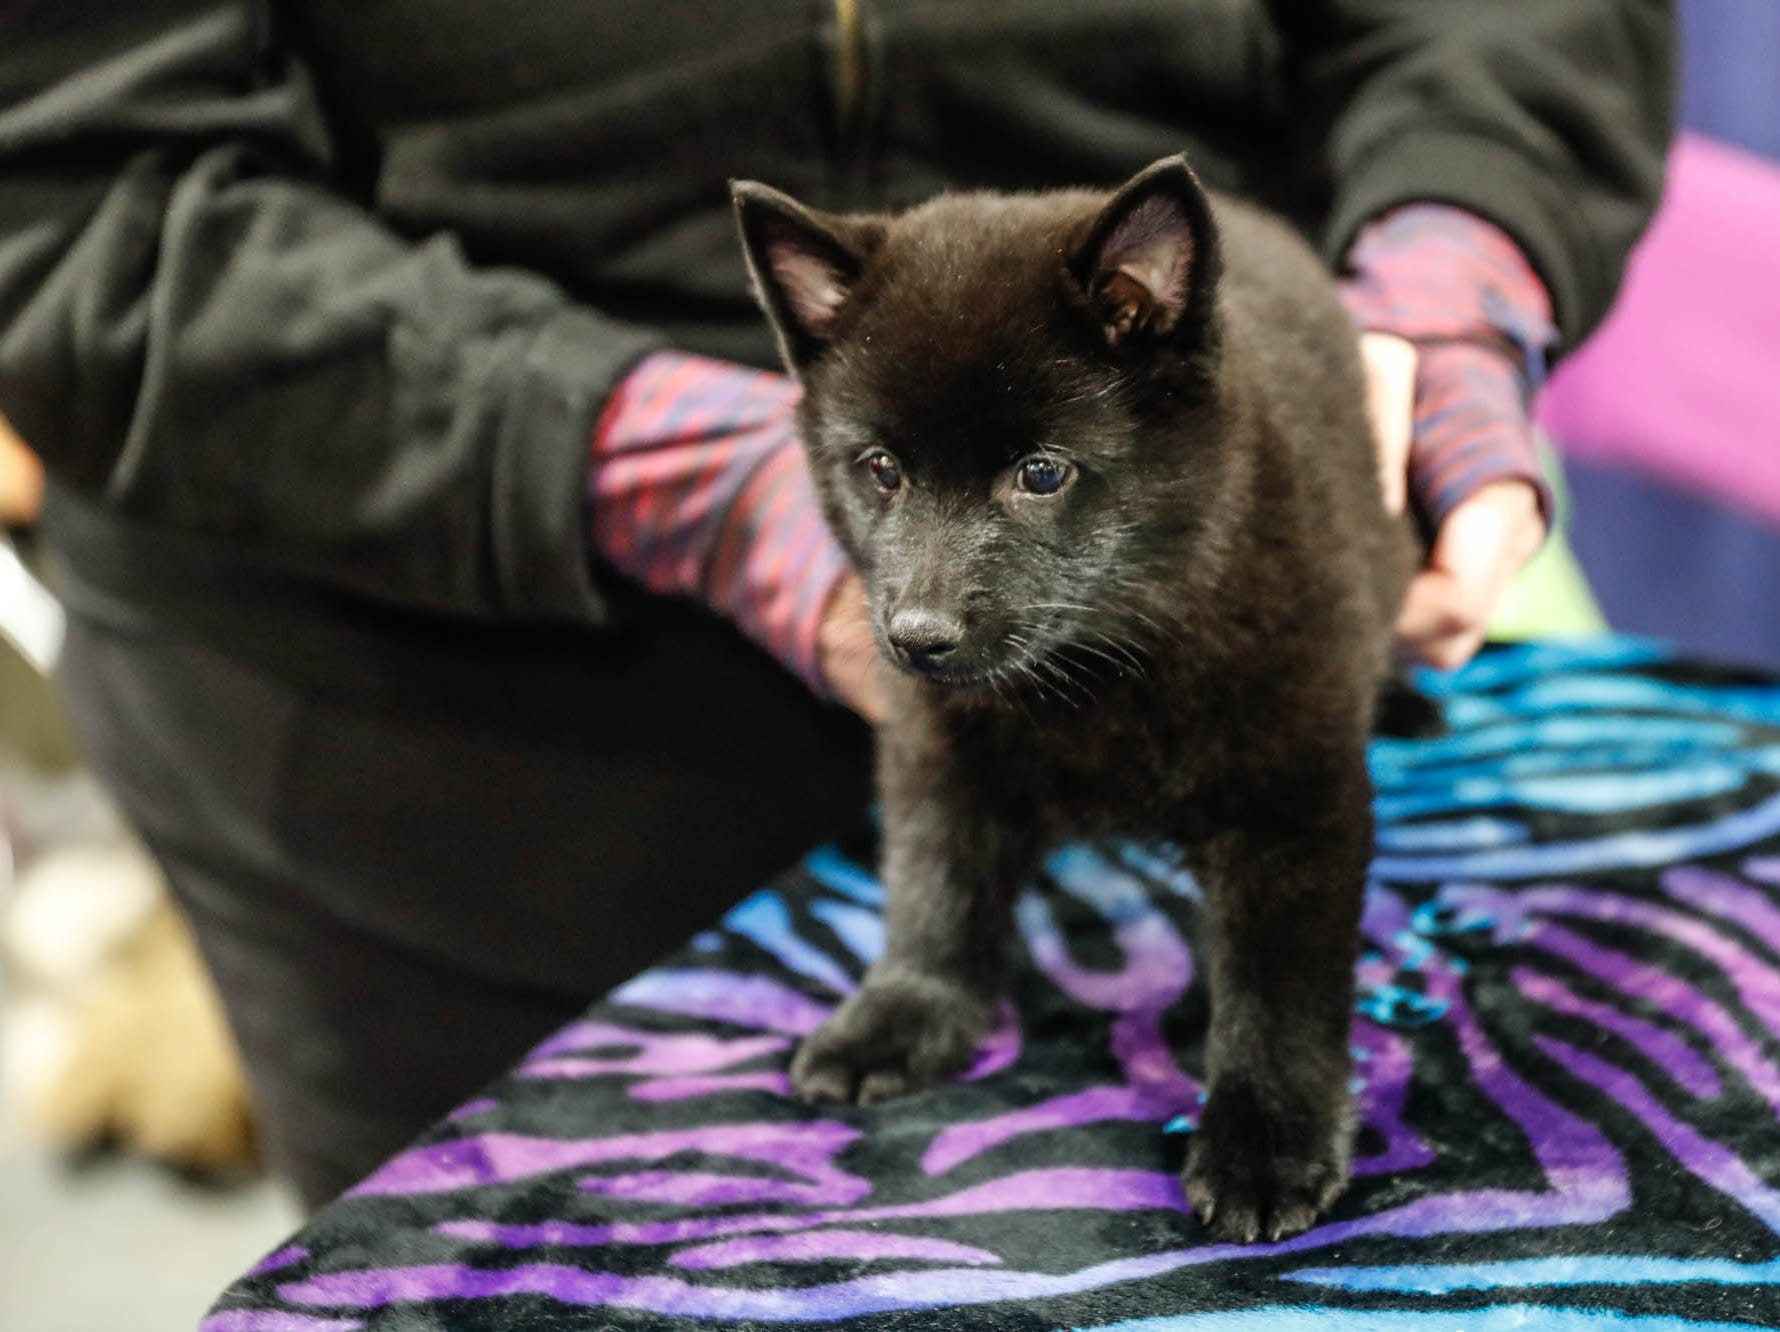 Sara Name holds her schipperke puppy named Ice at the Great Indy Pet Expo, held at the Indiana State Fairgrounds on Sat. Nov. 10, 2018.